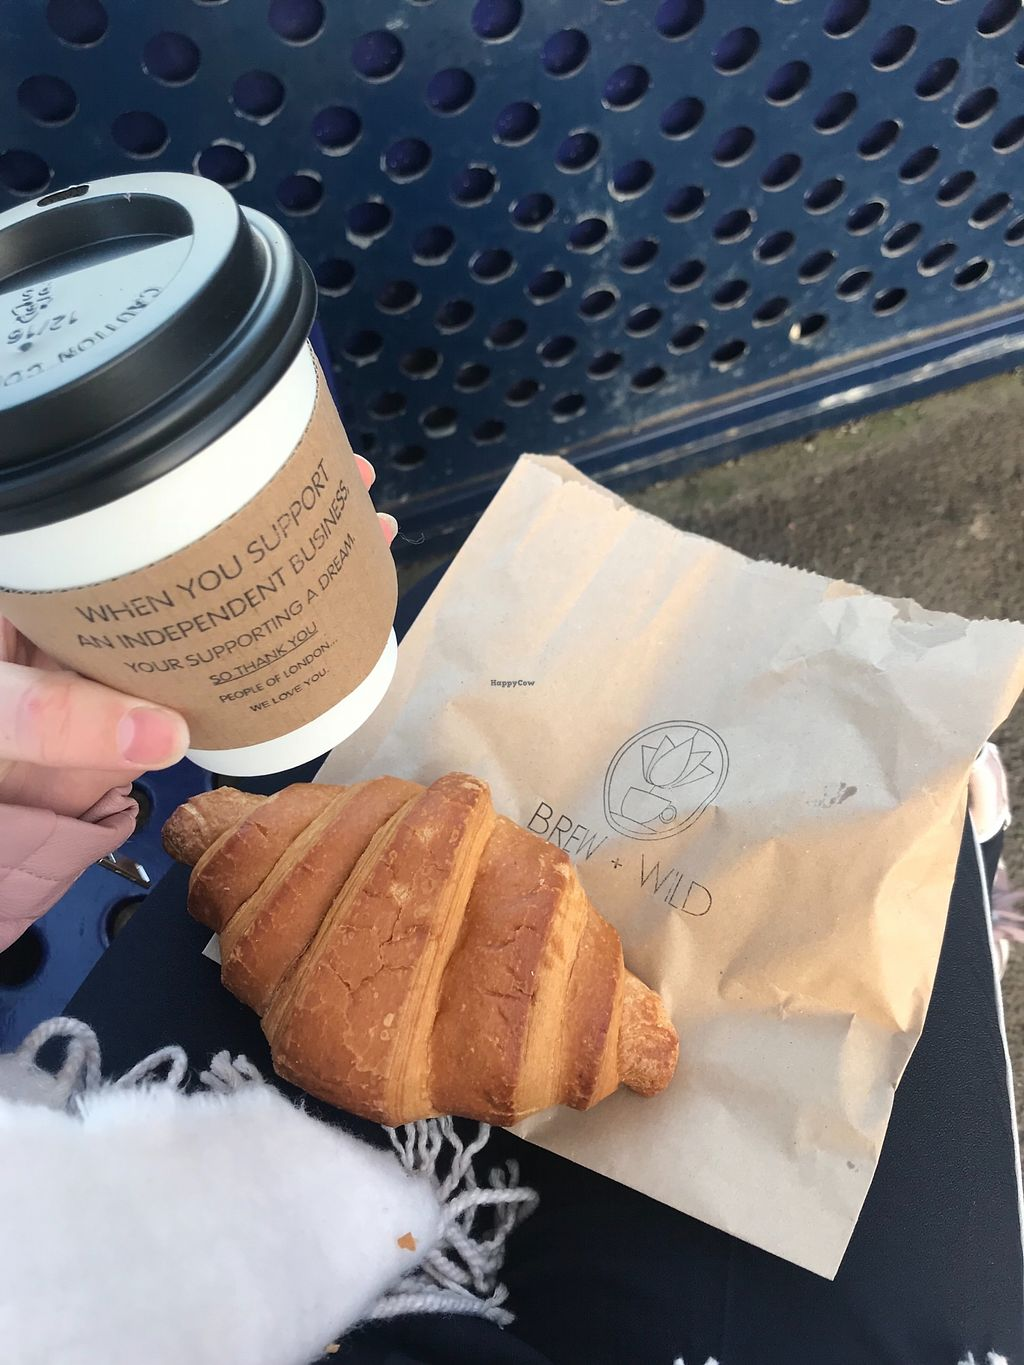 """Photo of Brew + Wild  by <a href=""""/members/profile/soph161"""">soph161</a> <br/>Vegan croissant and almond milk latte yay! <br/> April 16, 2018  - <a href='/contact/abuse/image/102319/386662'>Report</a>"""